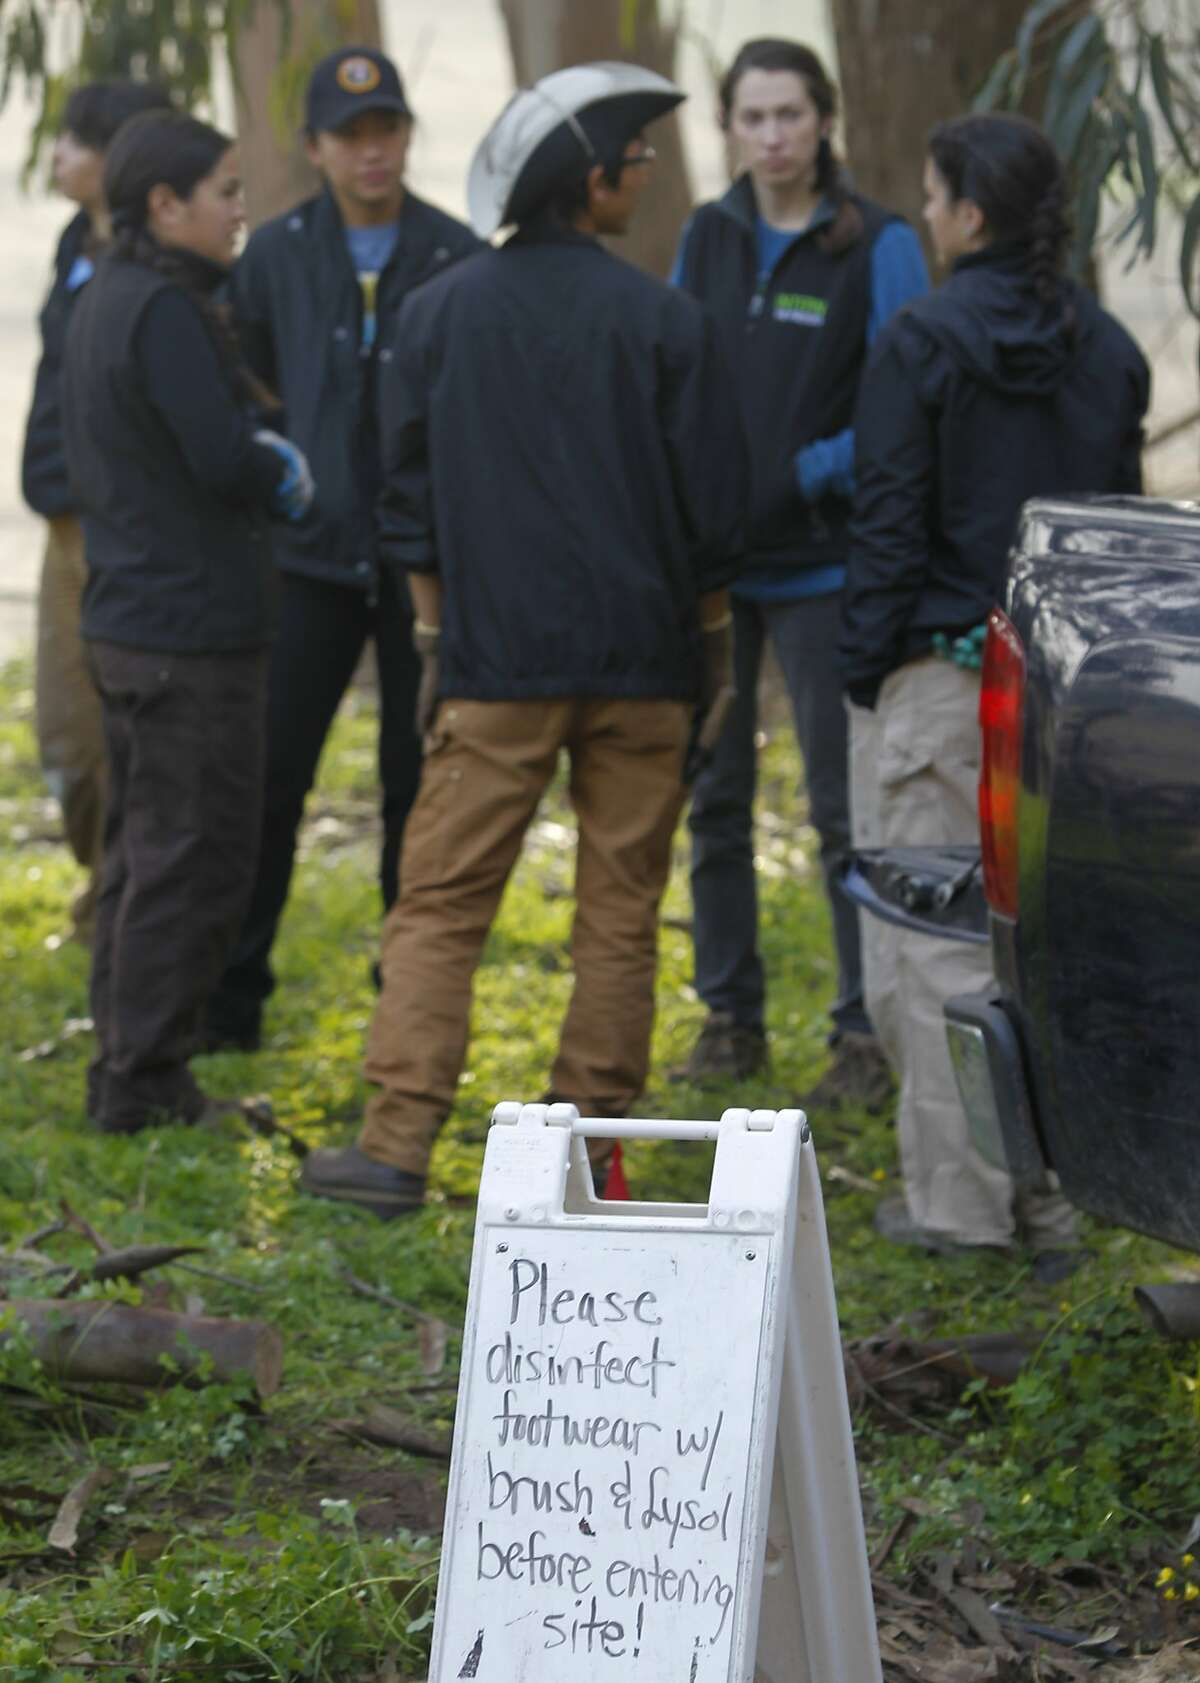 Volunteers and interns gather before planting native vegetation for a restoration project at the Presidio in San Francisco, Calif. on Wednesday, Feb. 4, 2015. The Presidio Trust is implementing a new protocol by disinfecting footwear to minimize the spread of the Phytophthora plant fungus.